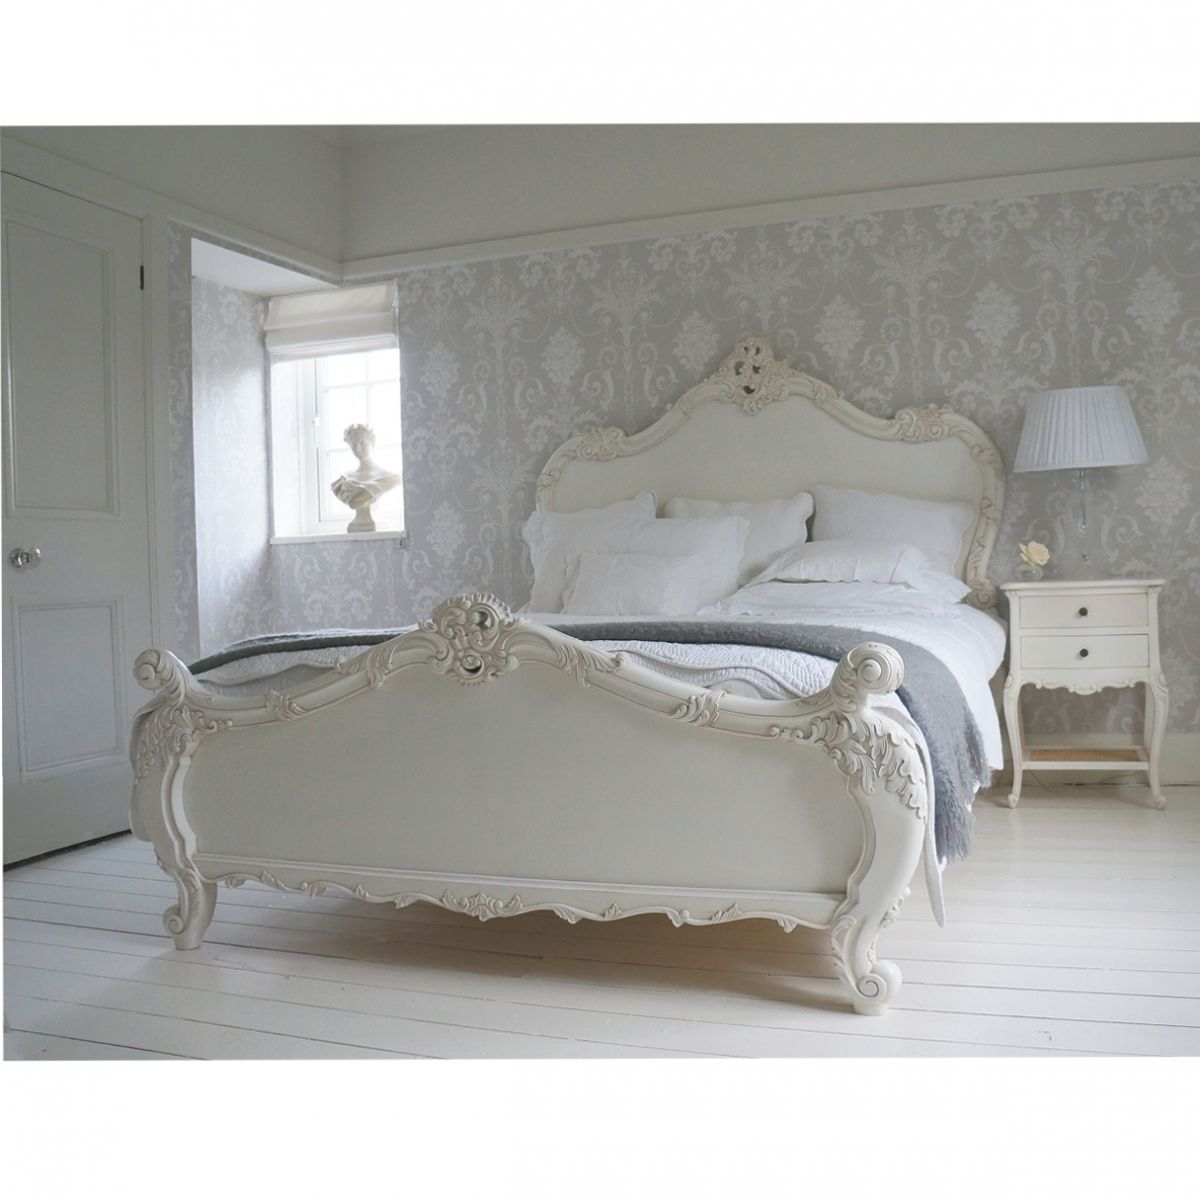 diana bust | french bed, bedrooms and bed mattress